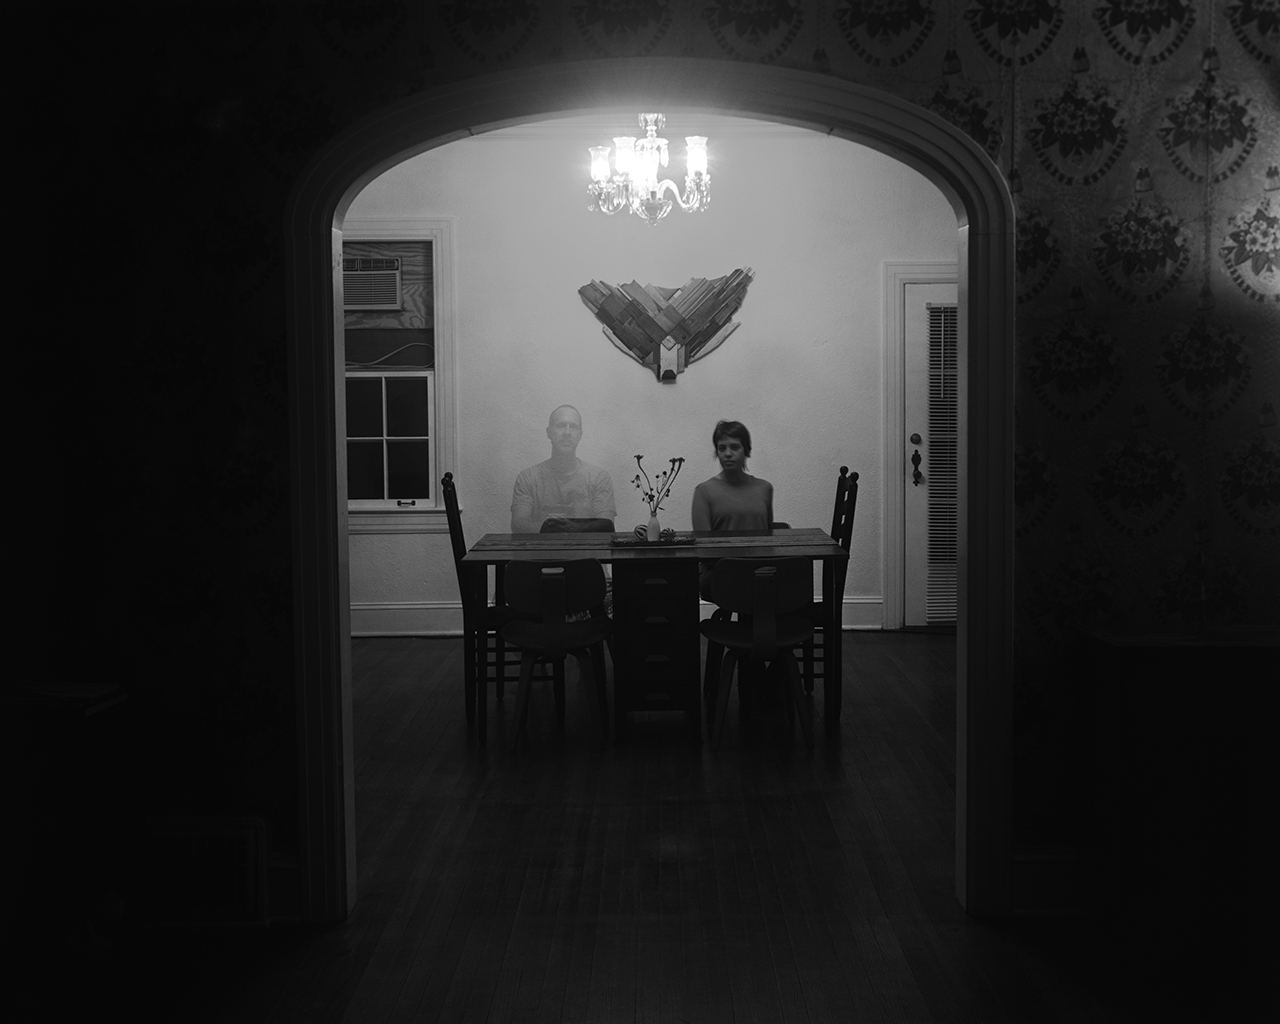 Elizabeth with Bill as a Ghost (in The Mansion)